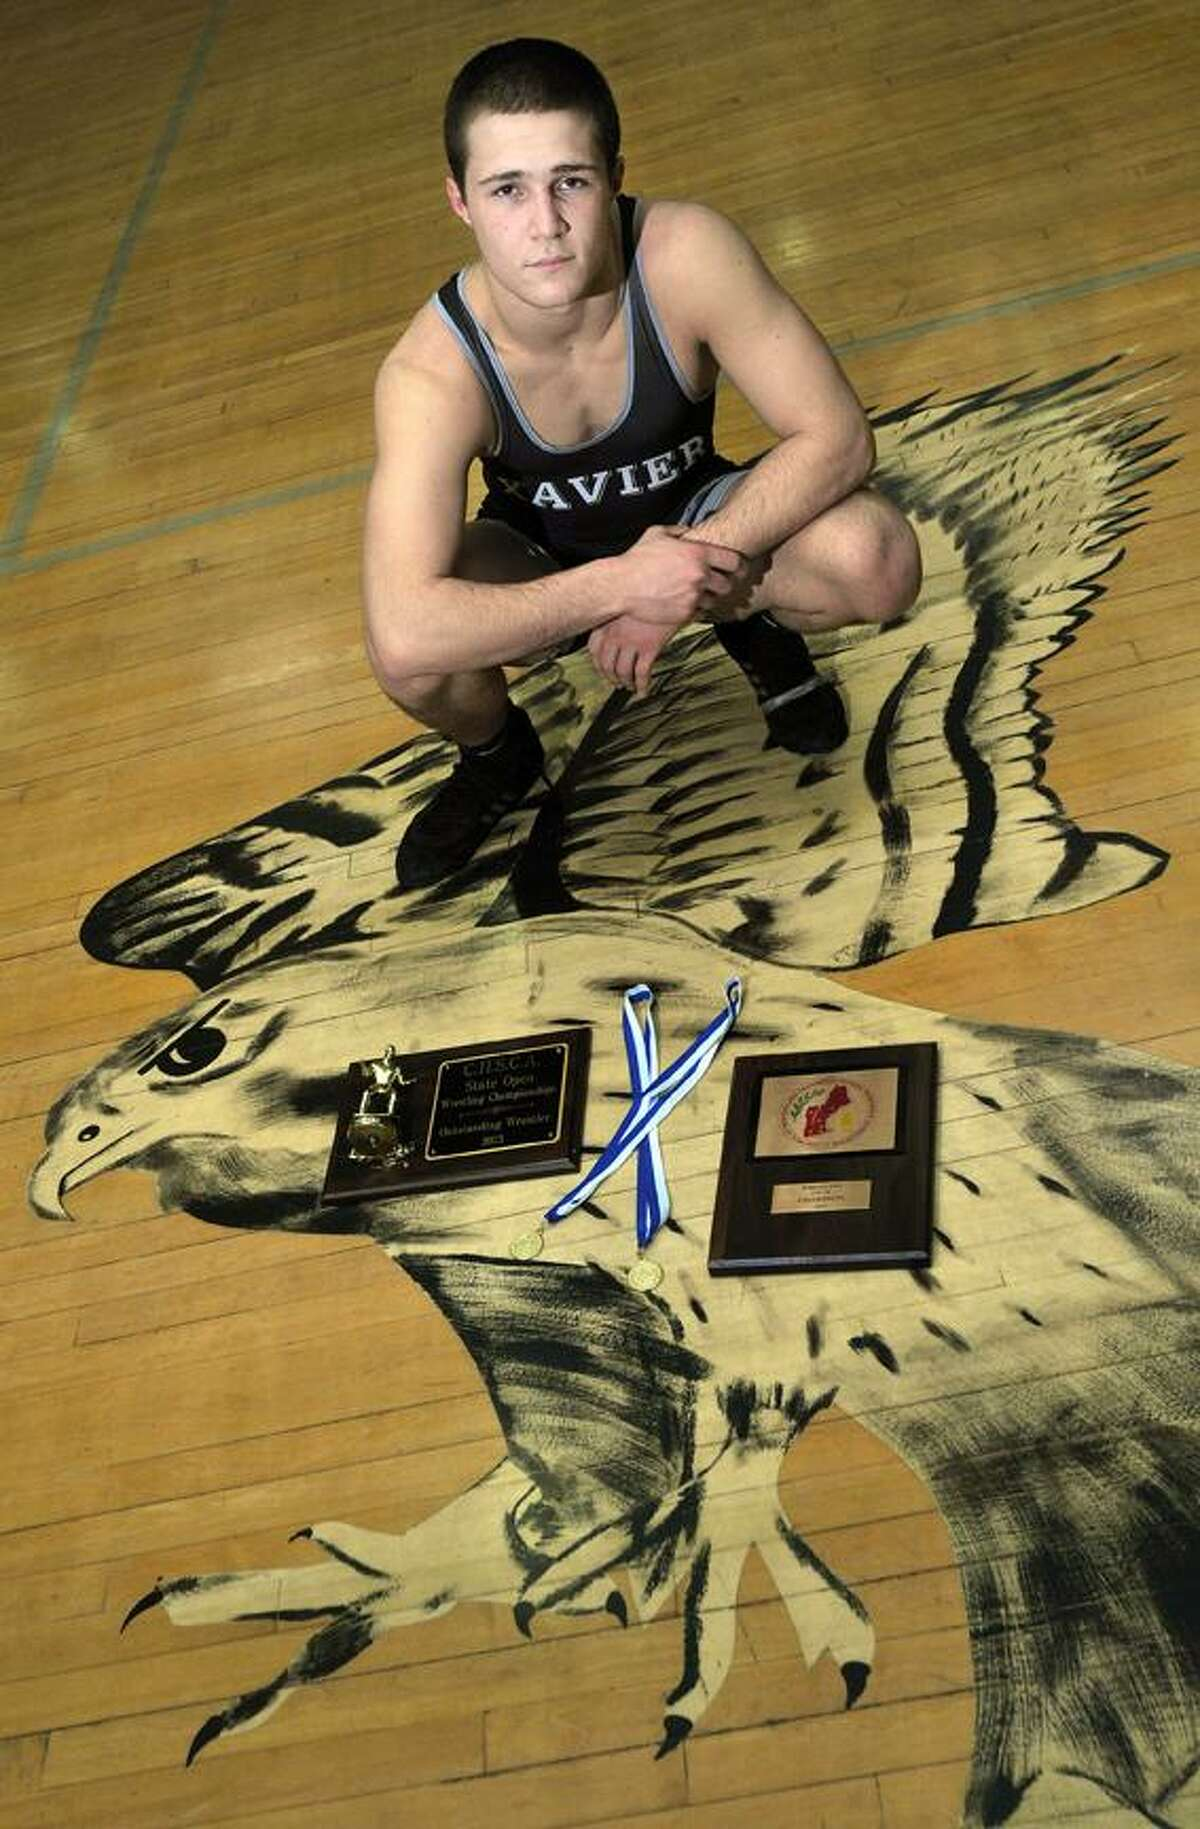 Catherine Avalone/The Middletown Press Xavier senior Elliot Antler won the New England wrestling championship at 170 pounds, earning a 9-1 major decision over Jared Jensen of Brunswick, Maine, in Providence, R.I..